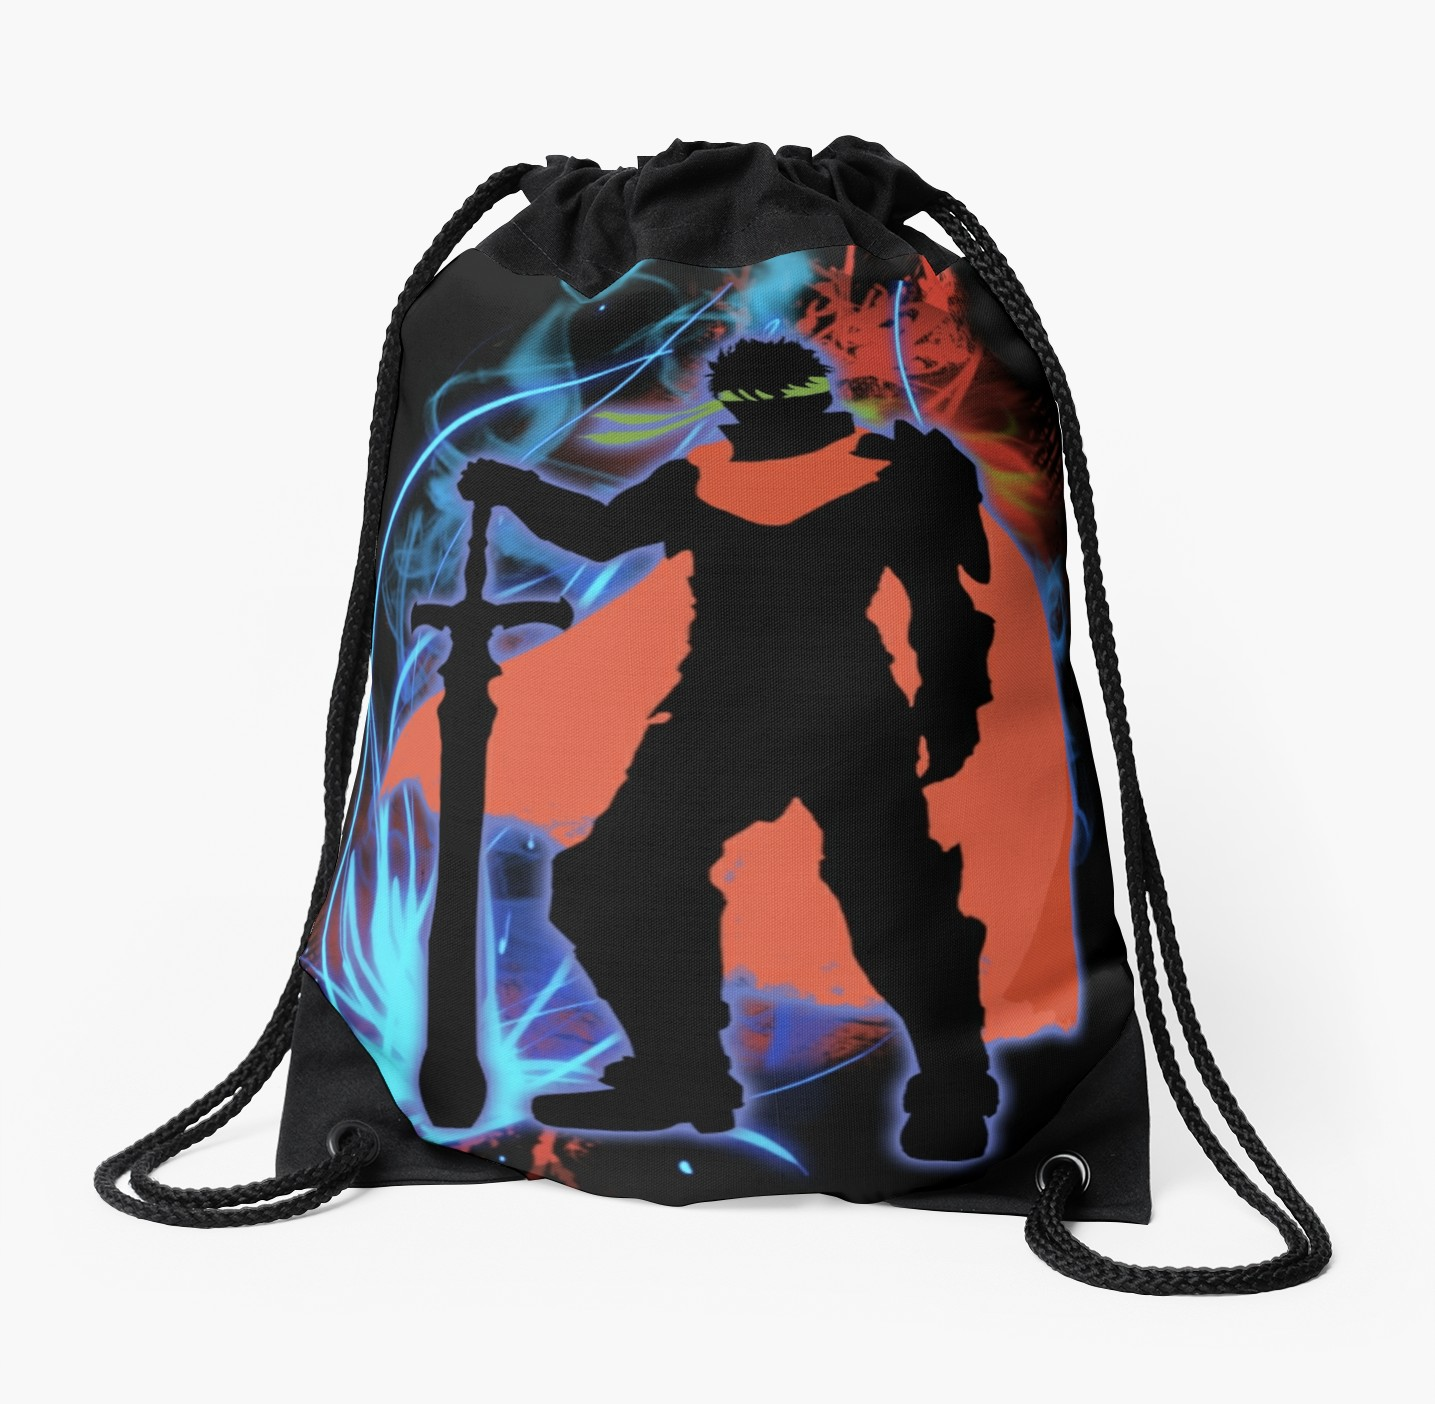 1435x1404 Super Smash Bros. Ike Silhouette Drawstring Bags By Jewlecho